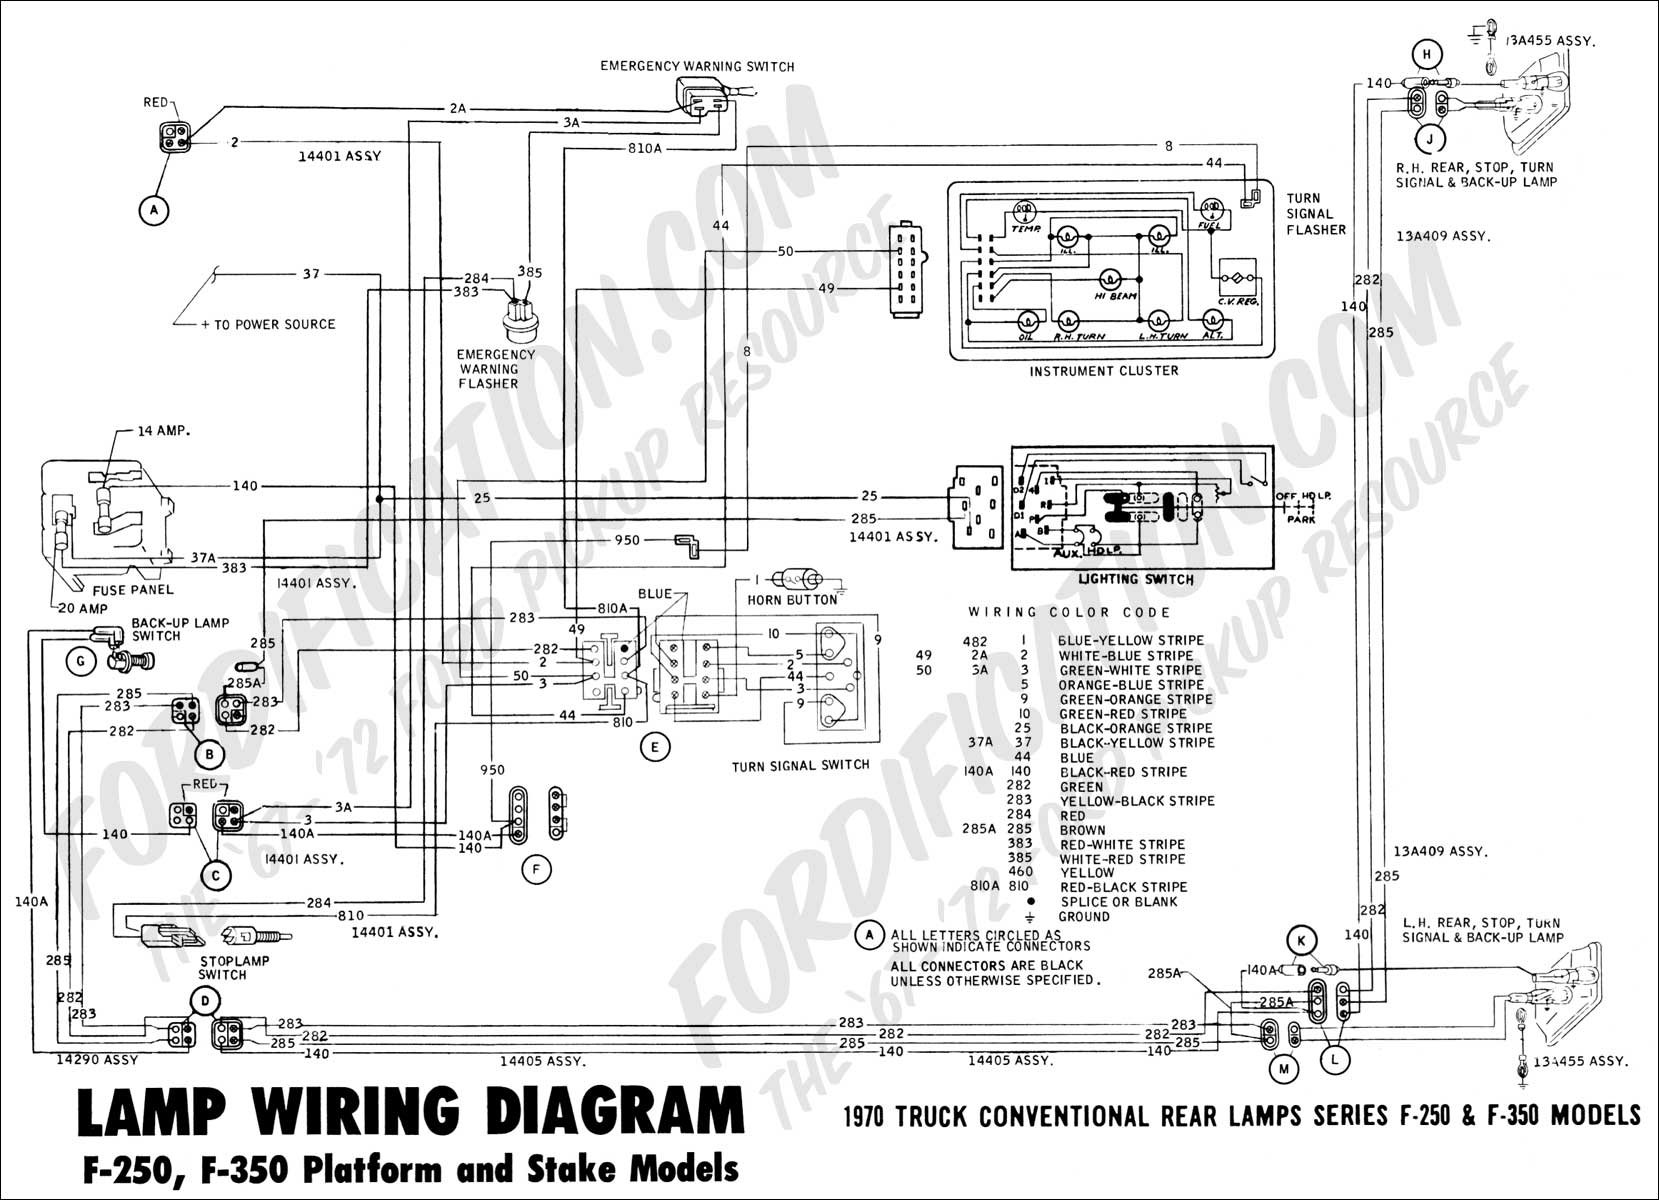 ford truck technical drawings and schematics - section h ... 1994 f 350 wiring diagram 1977 ford f 350 wiring diagram